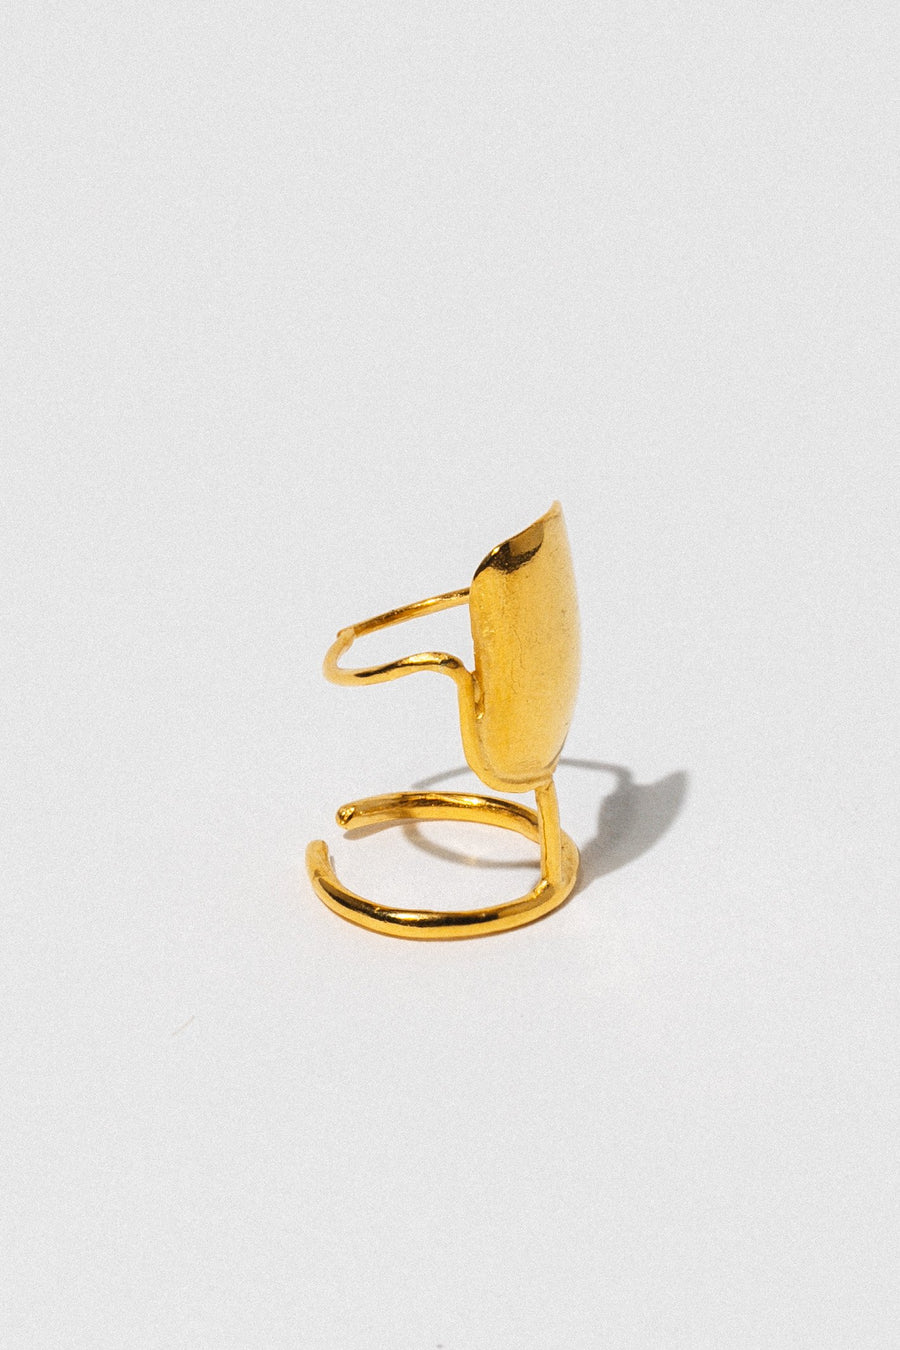 Aziza Handcrafted Jewelry Bastet Ring